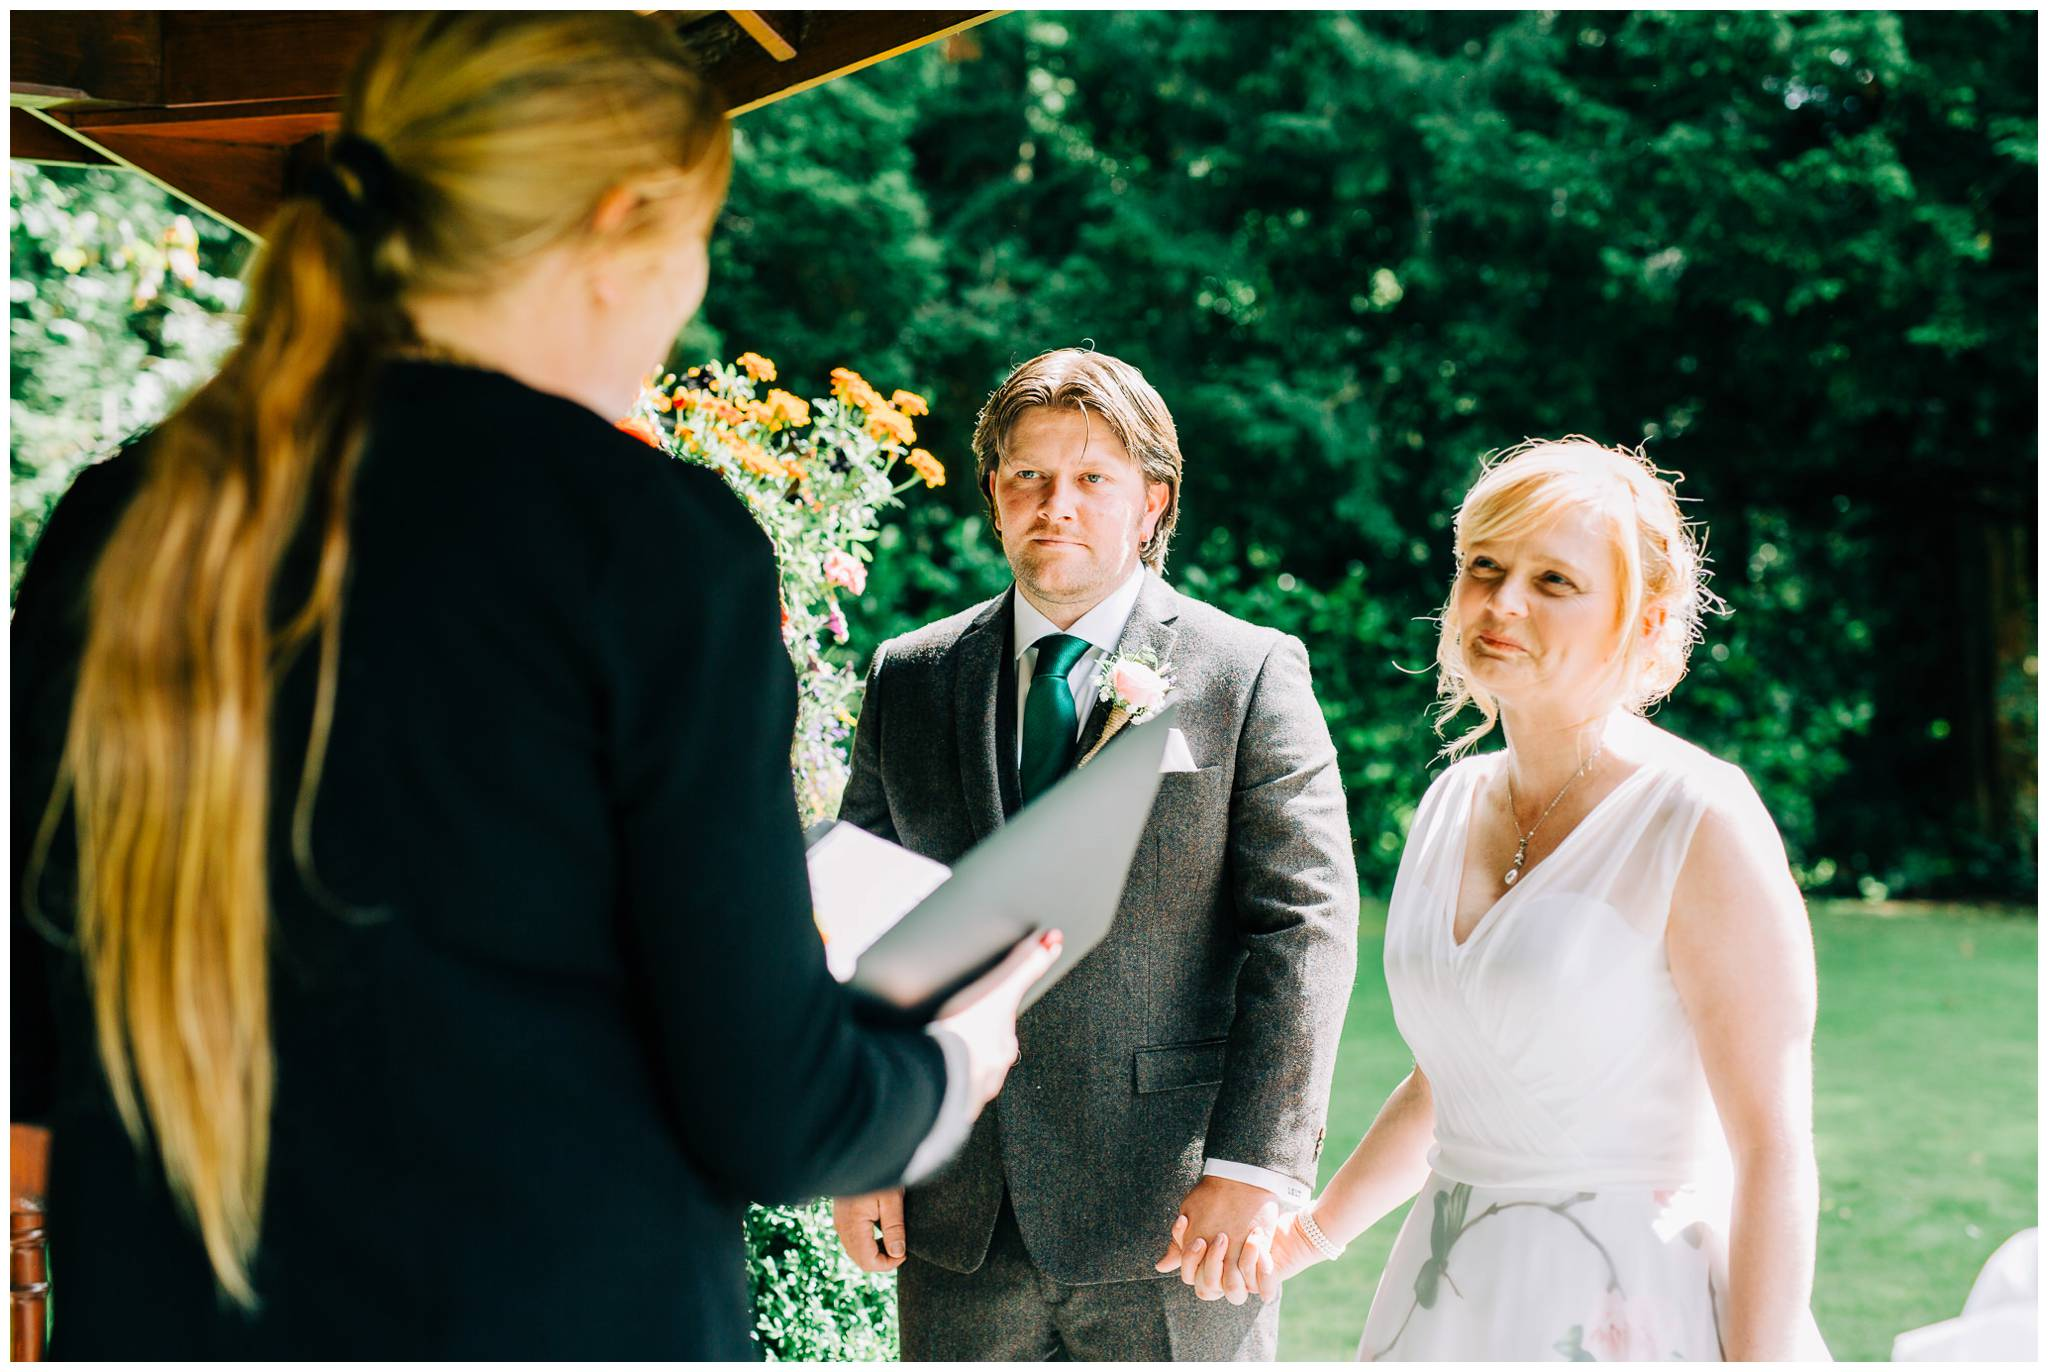 Natural wedding photography Manchester - Clare Robinson Photography_0179.jpg